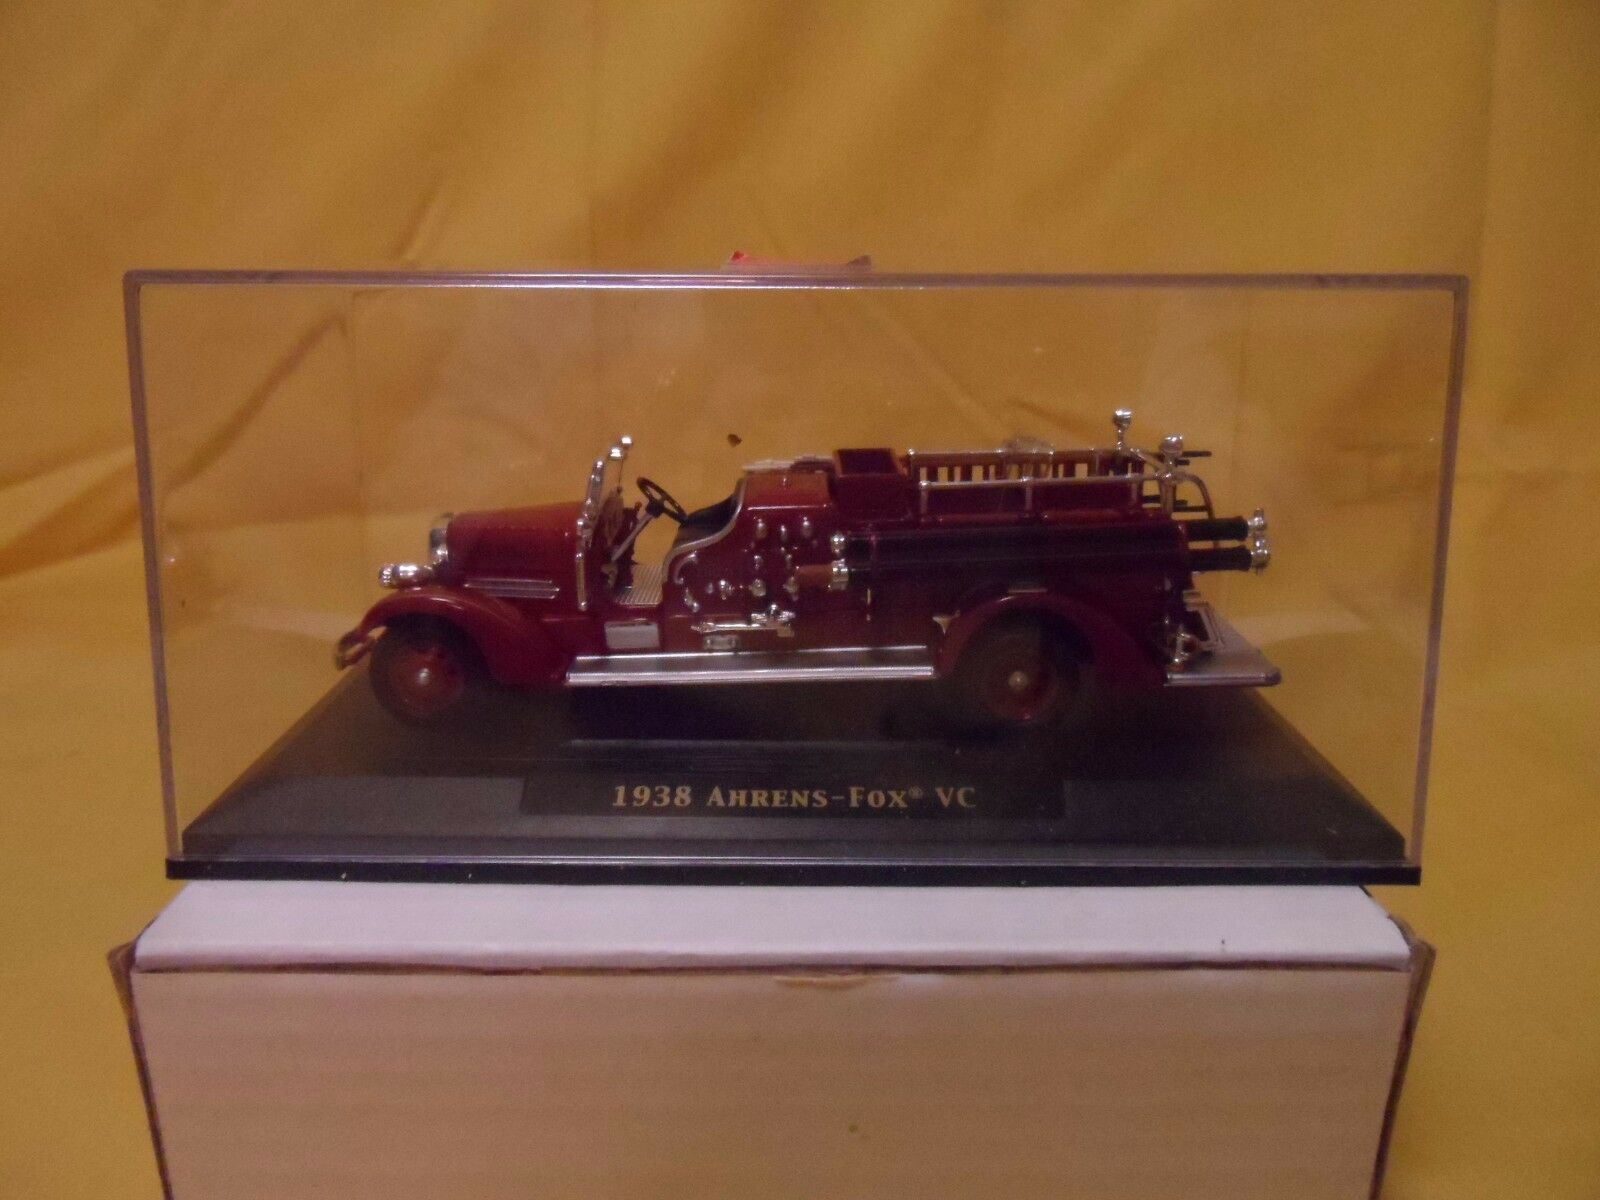 Road Signature - 1938 AHRENS-FOX VC FIRE ENGINE